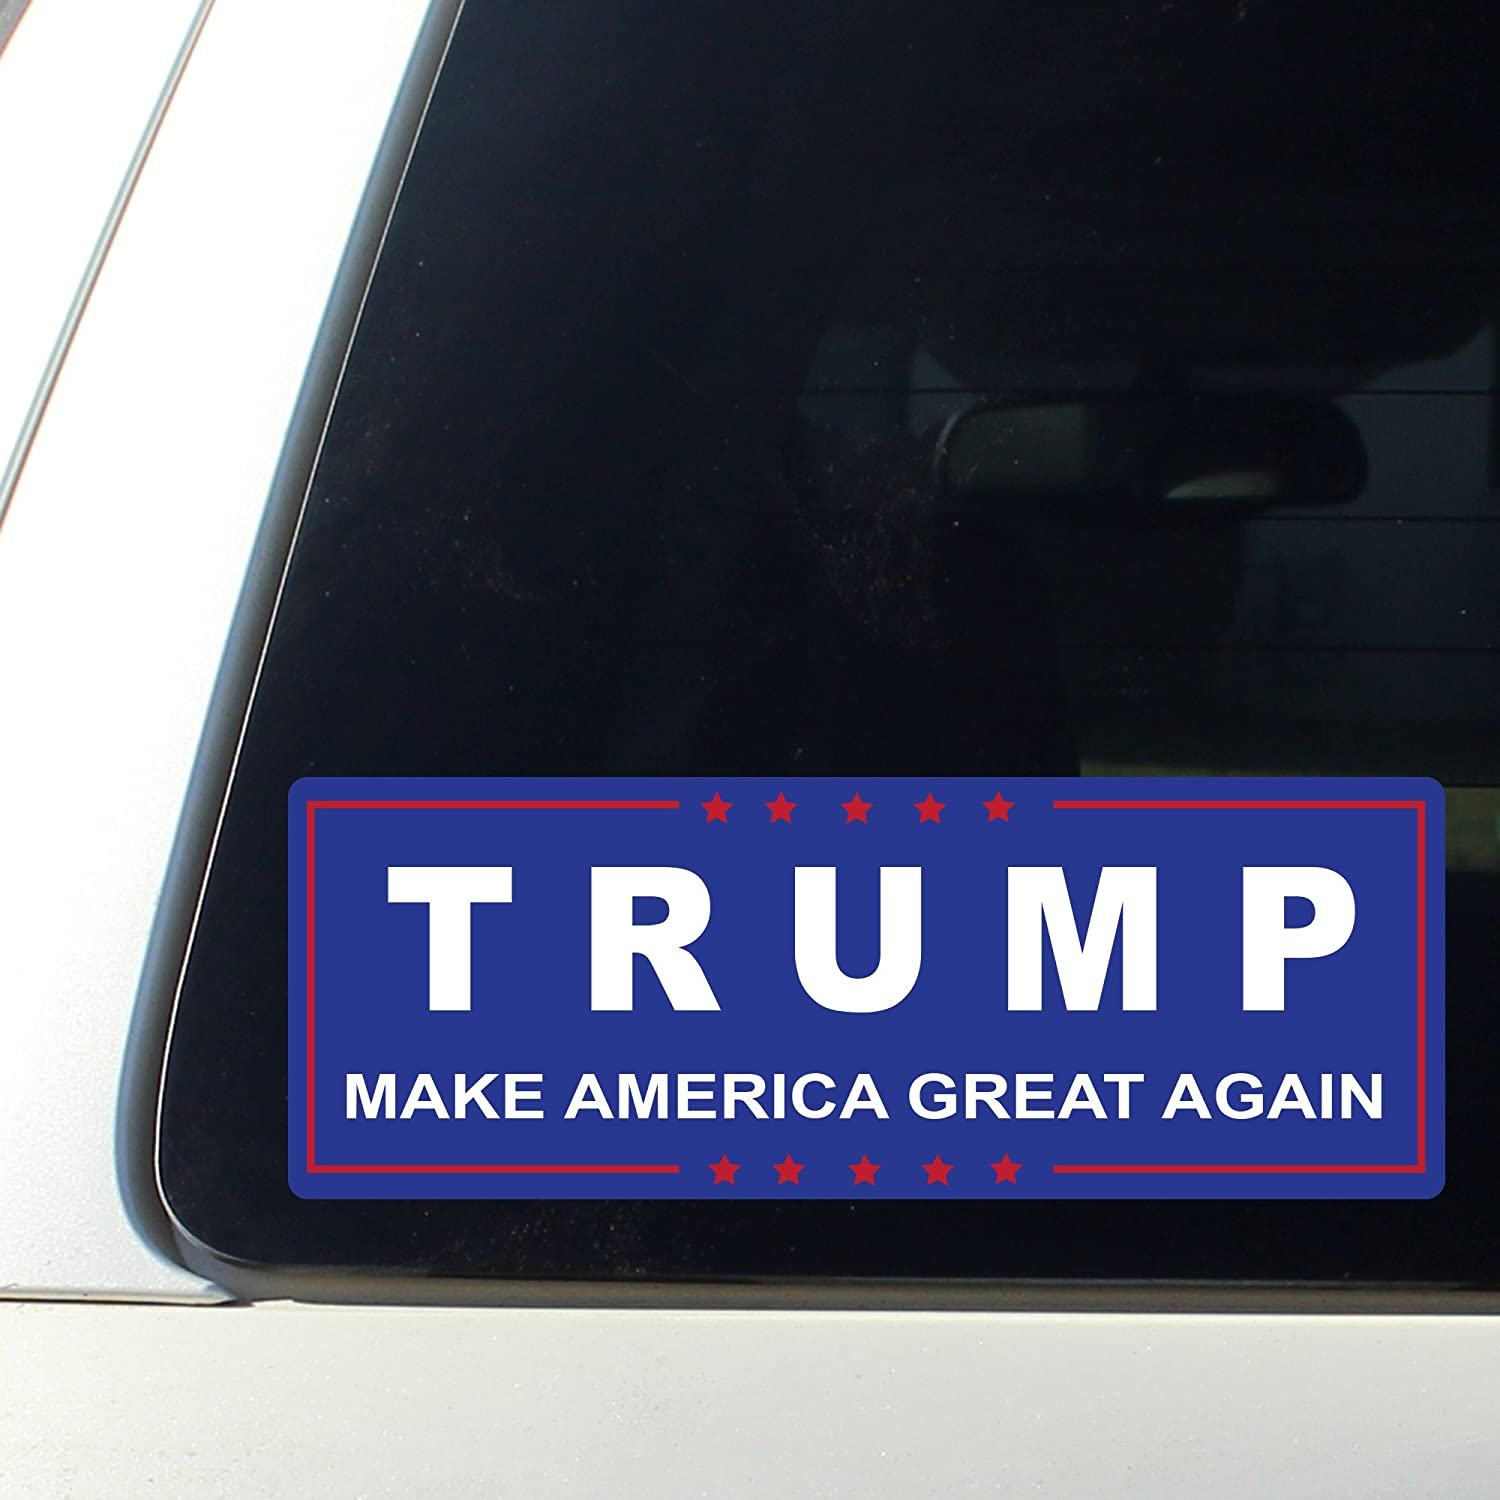 Amazoncom Trump Making America Great Again Bumper Sticker - Window decals amazon